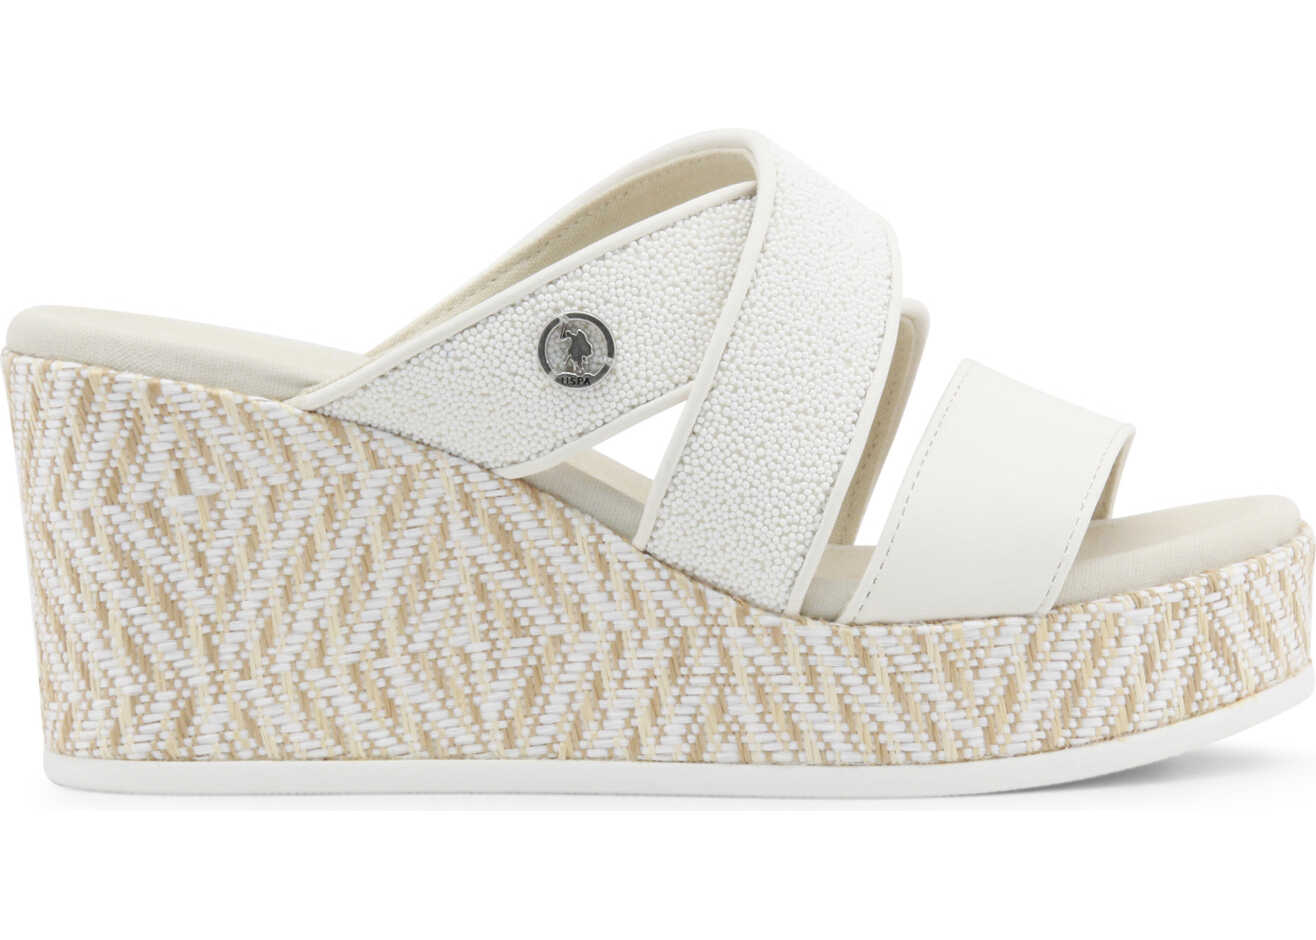 U.S. POLO ASSN. Donet4155S8_Y4 White